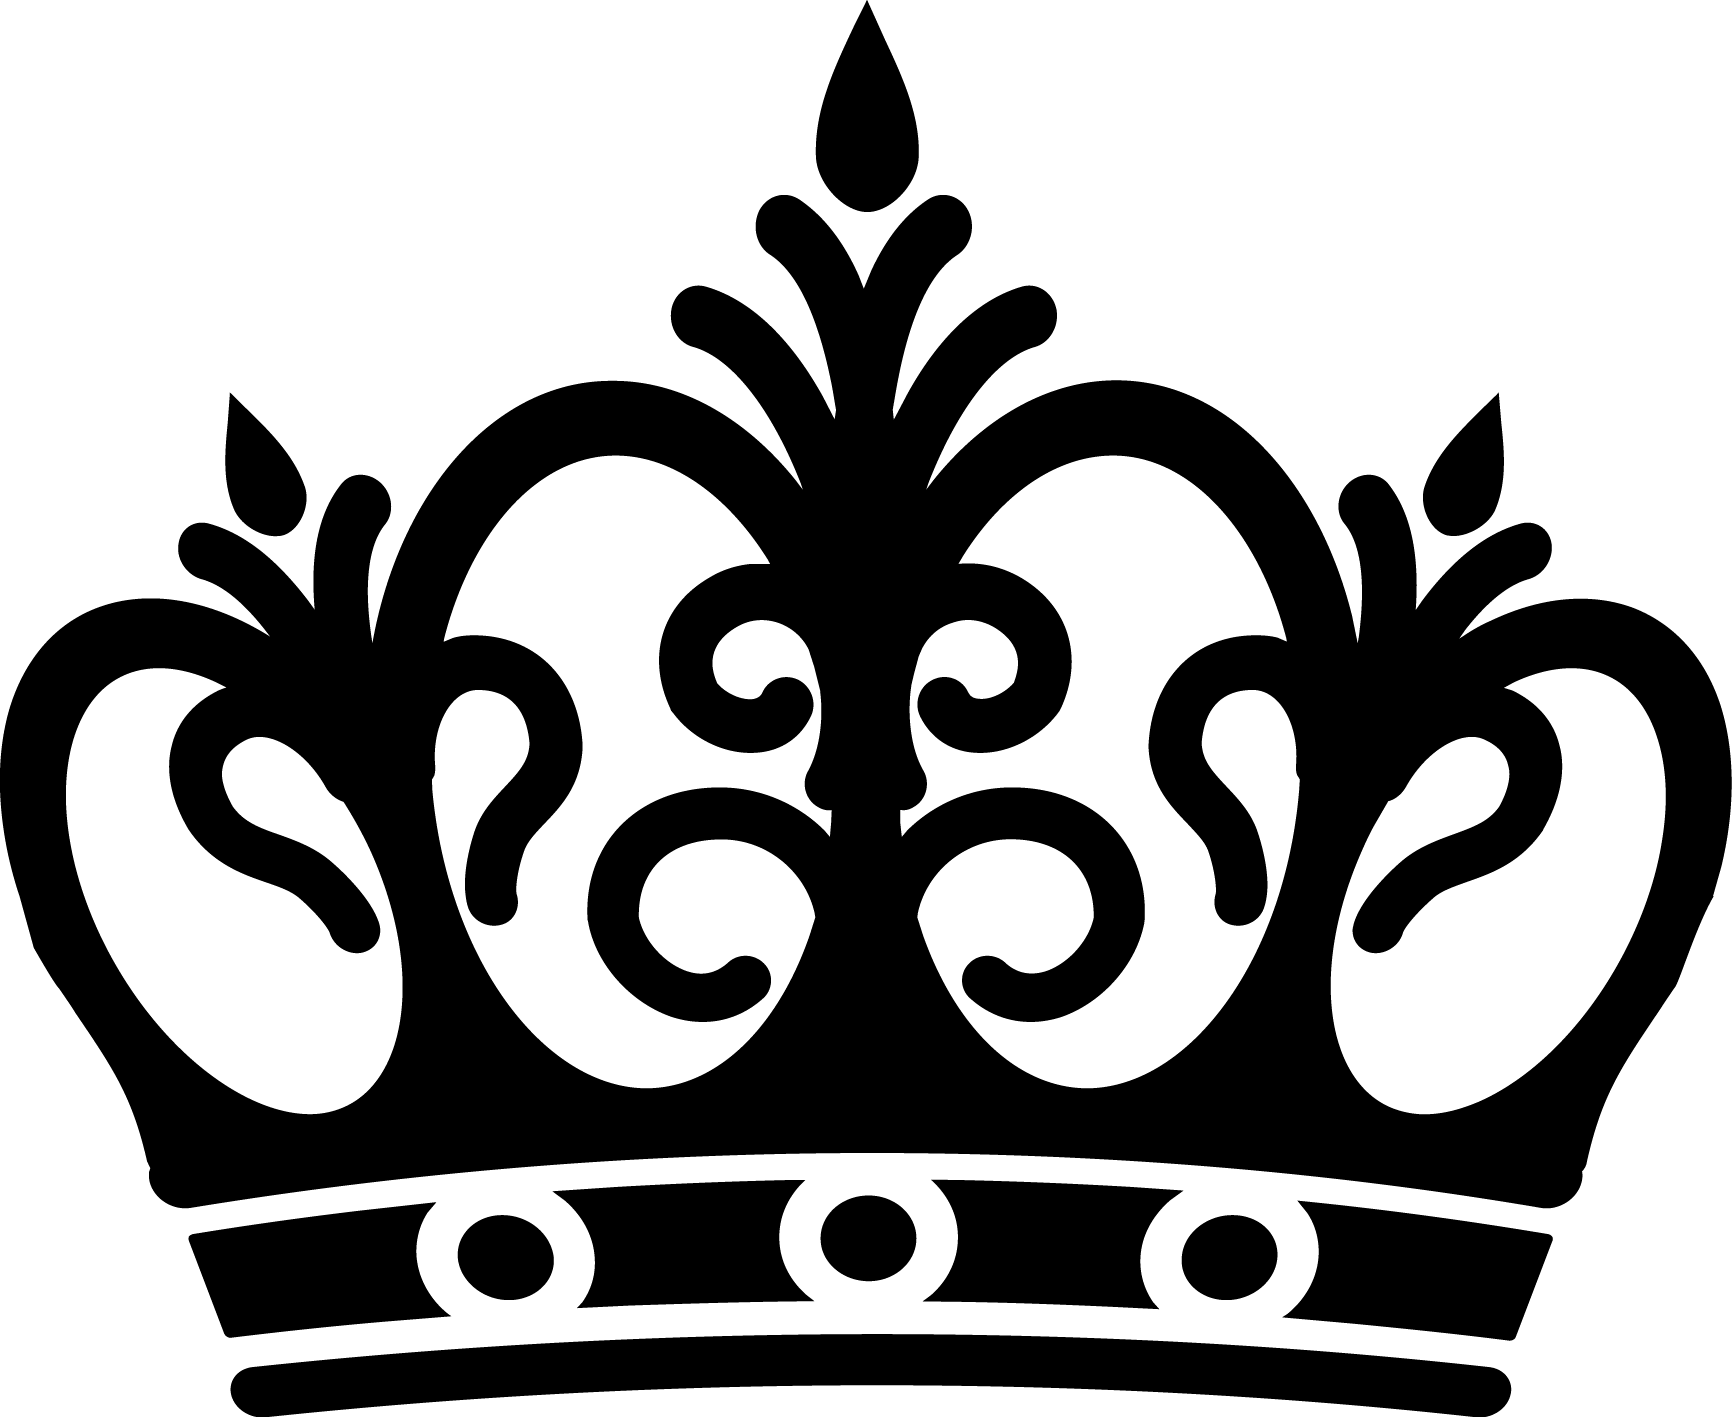 Hand drawn crown clipart jpg download crown vector png - Buscar con Google | Tatuajes | Pinterest | Crown ... jpg download